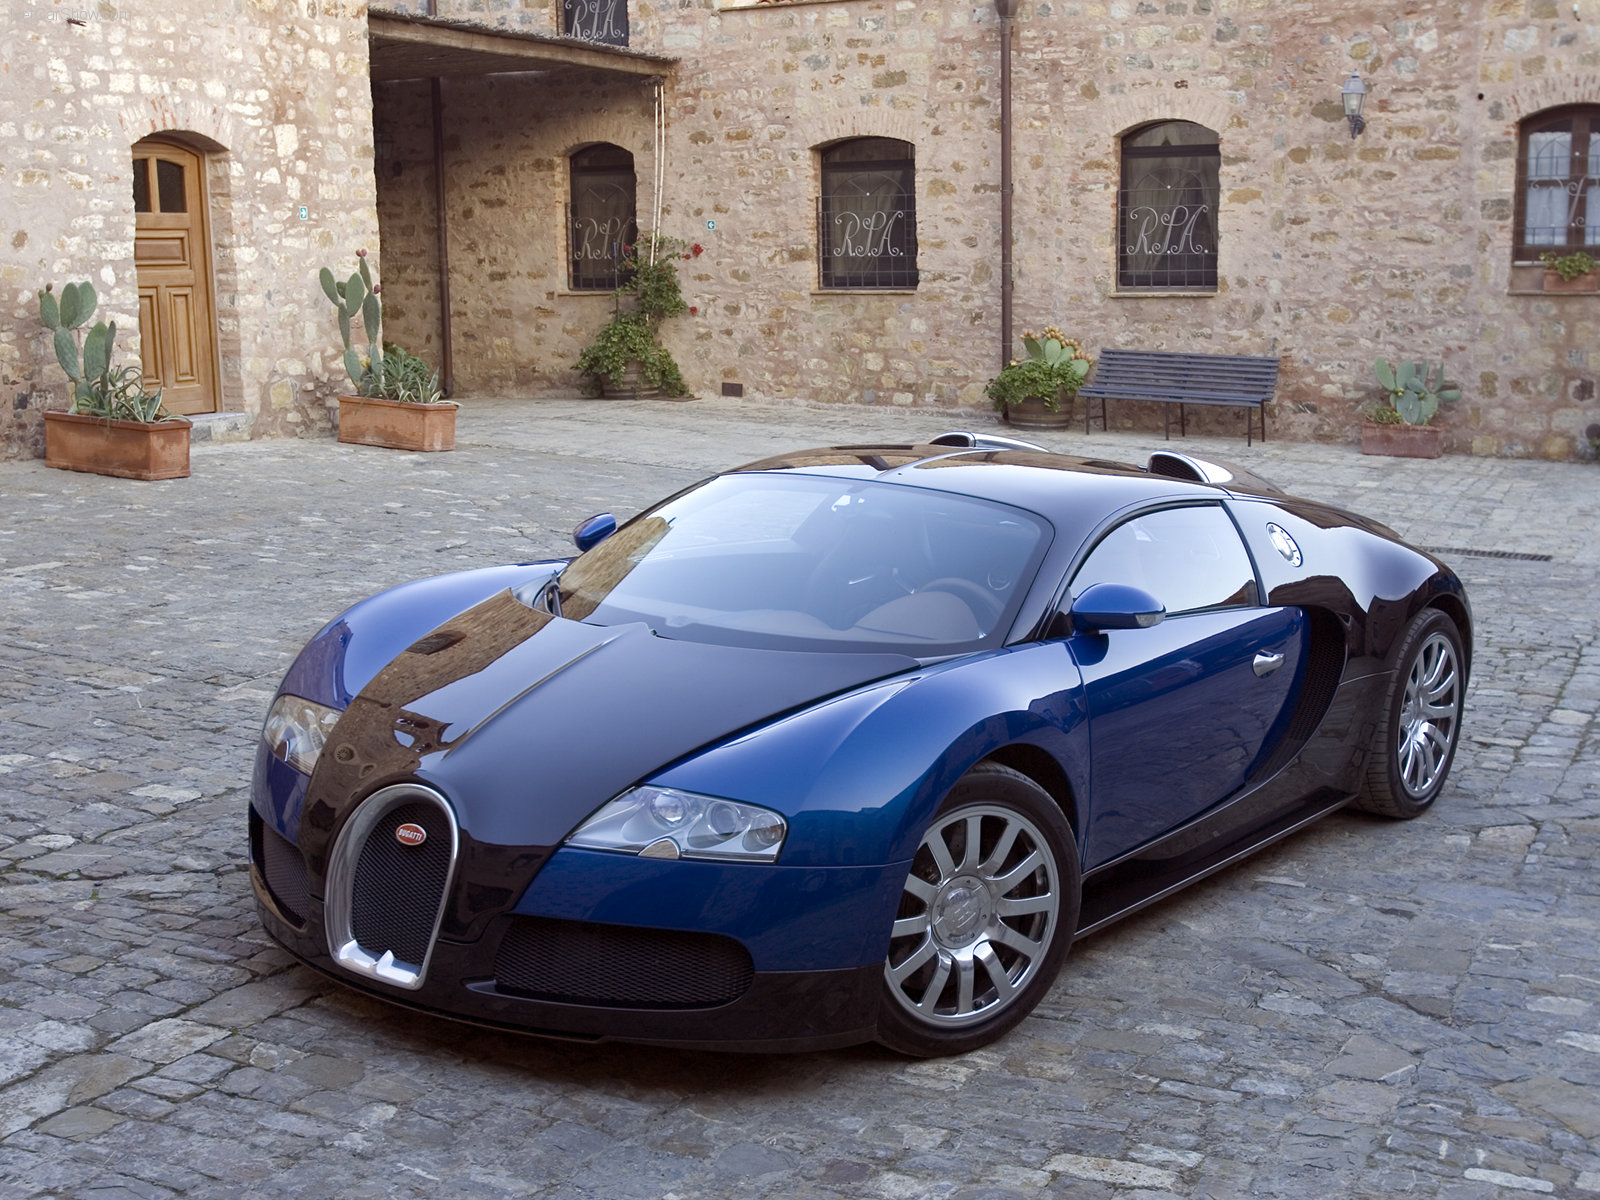 Bugatti-Veyron_2005_1600x1200_wallpaper_03 Surprising Bugatti Veyron Price In Bahrain Cars Trend